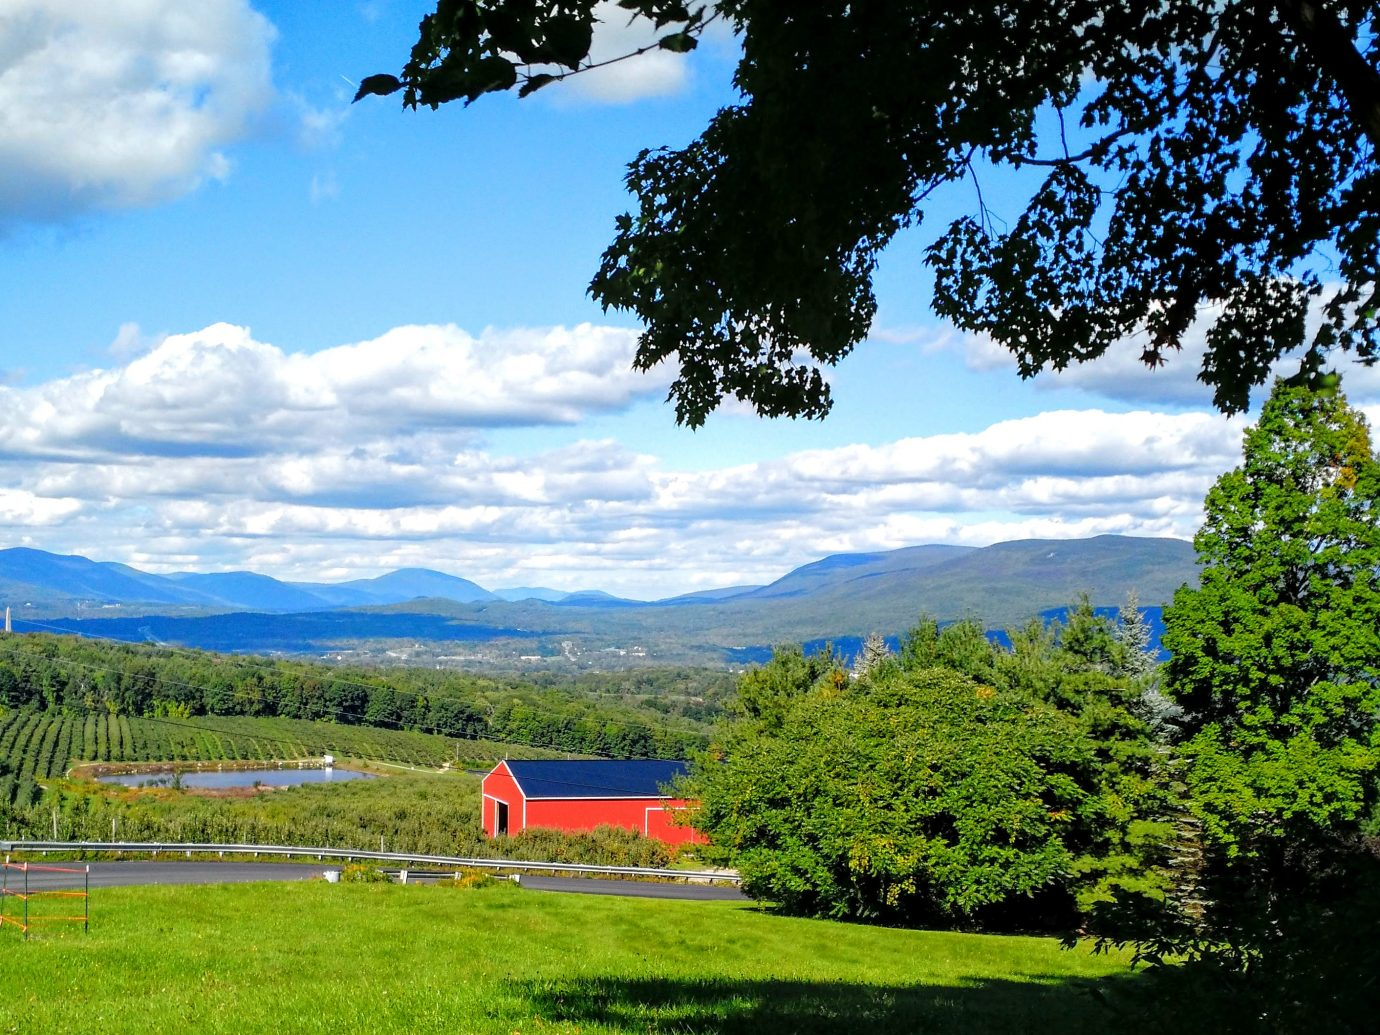 Scene of an apple orchard in Vermont